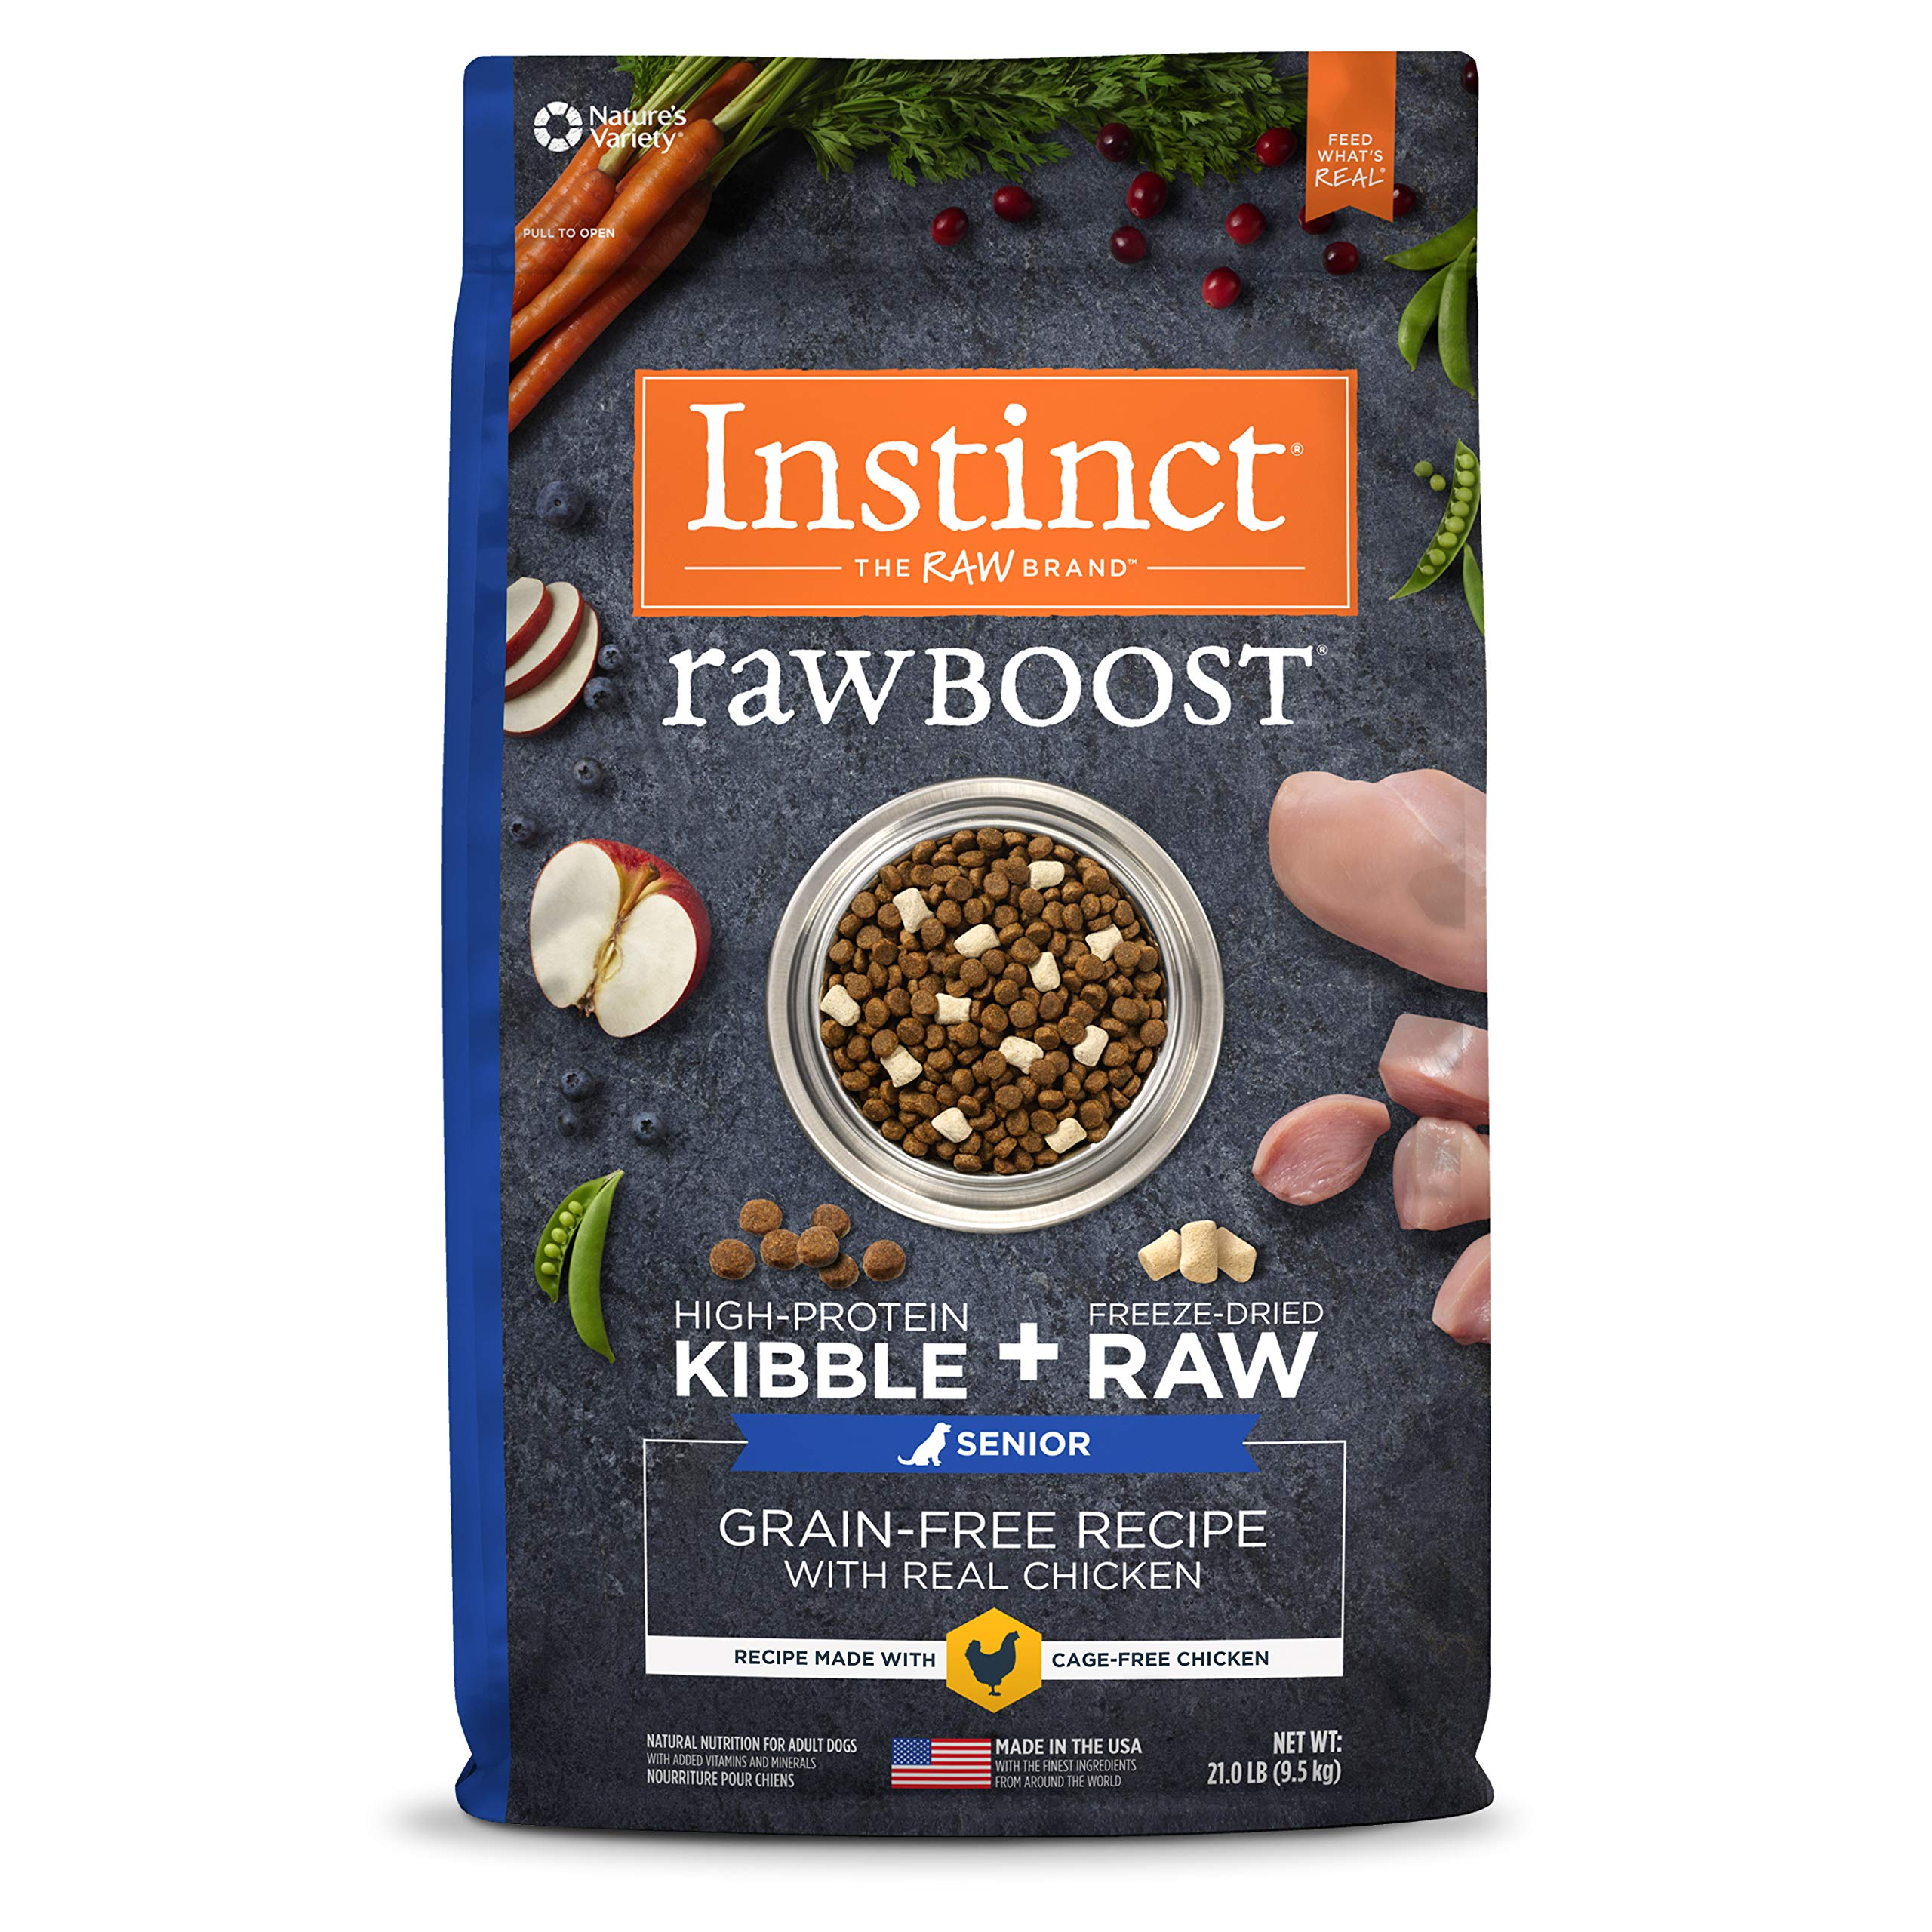 Instinct Raw Boost Senior Grain Free Recipe with Real Chicken Natural Dry Dog Food by Nature's Variety, 21 lb. Bag by Instinct